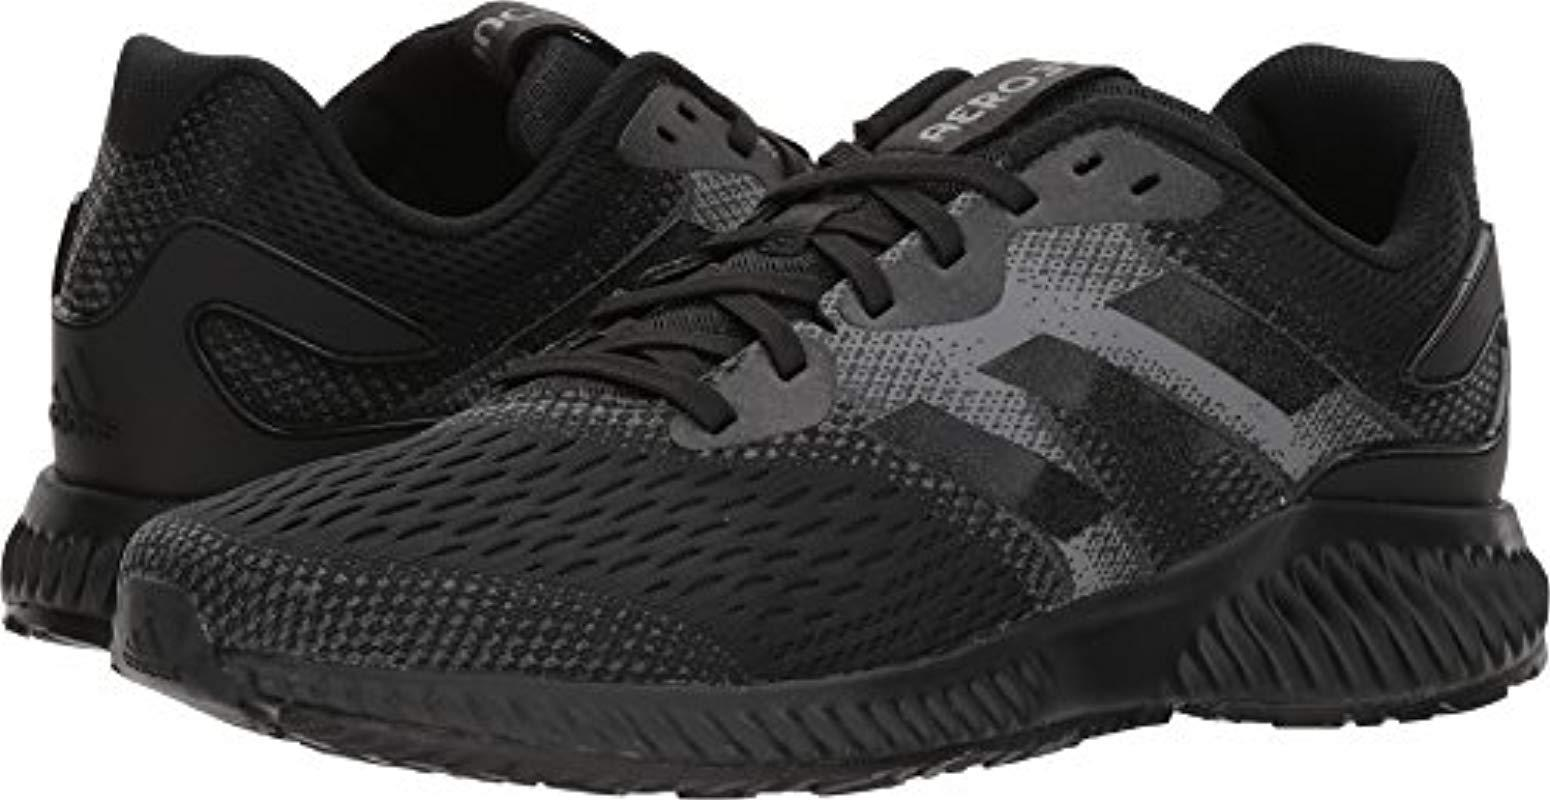 e0ab5ca1a2d61b Lyst - Adidas Aerobounce M in Black for Men - Save 6.38297872340425%